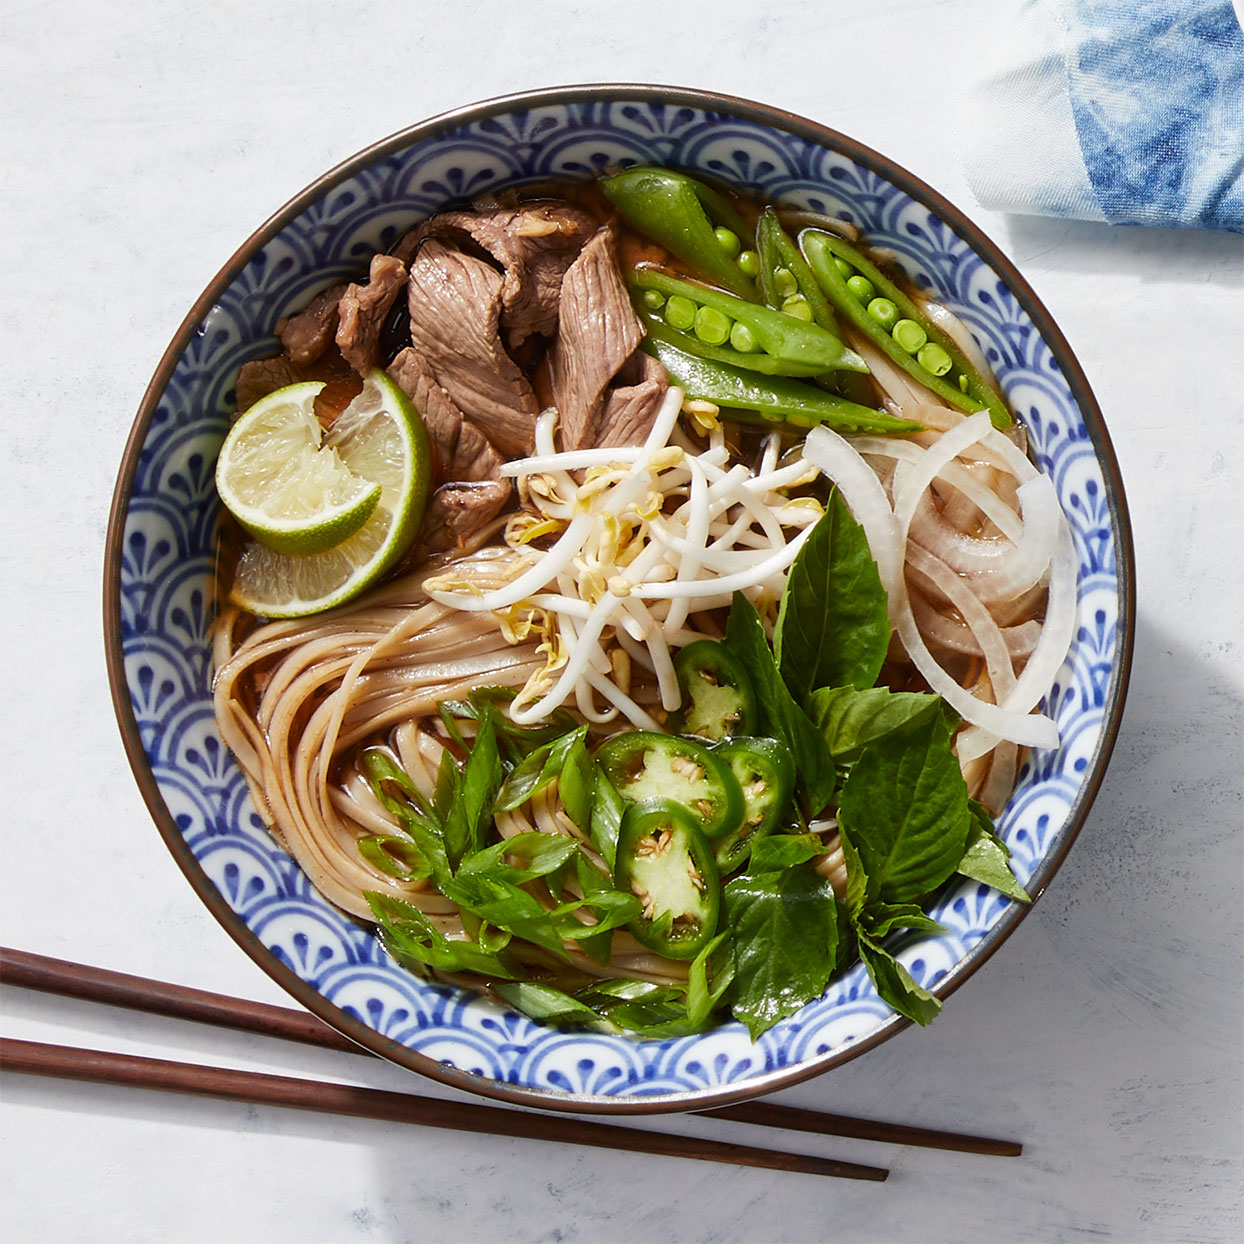 Traditional Vietnamese beef pho involves simmering whole herbs and aromatics for hours to achieve a rich, clear broth with a deep flavor; this shortcut version simmers ground spices for just 15 minutes, yet still achieves a savory, rich broth.